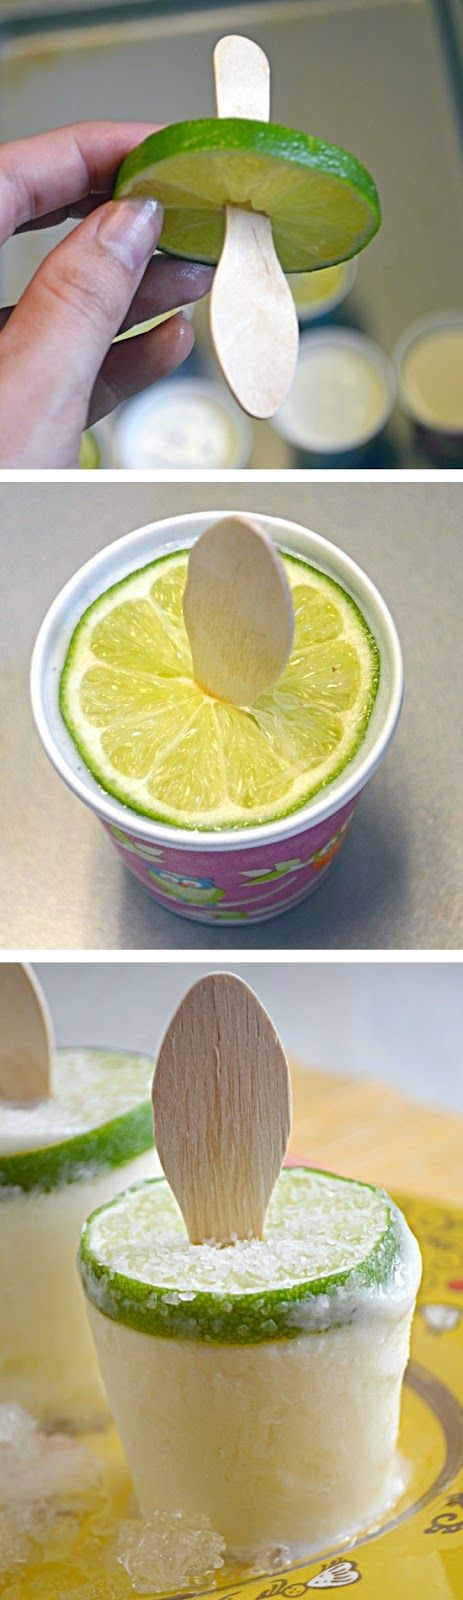 Creamy Margarita Popsicles (you can come up with a non-alcoholic version)